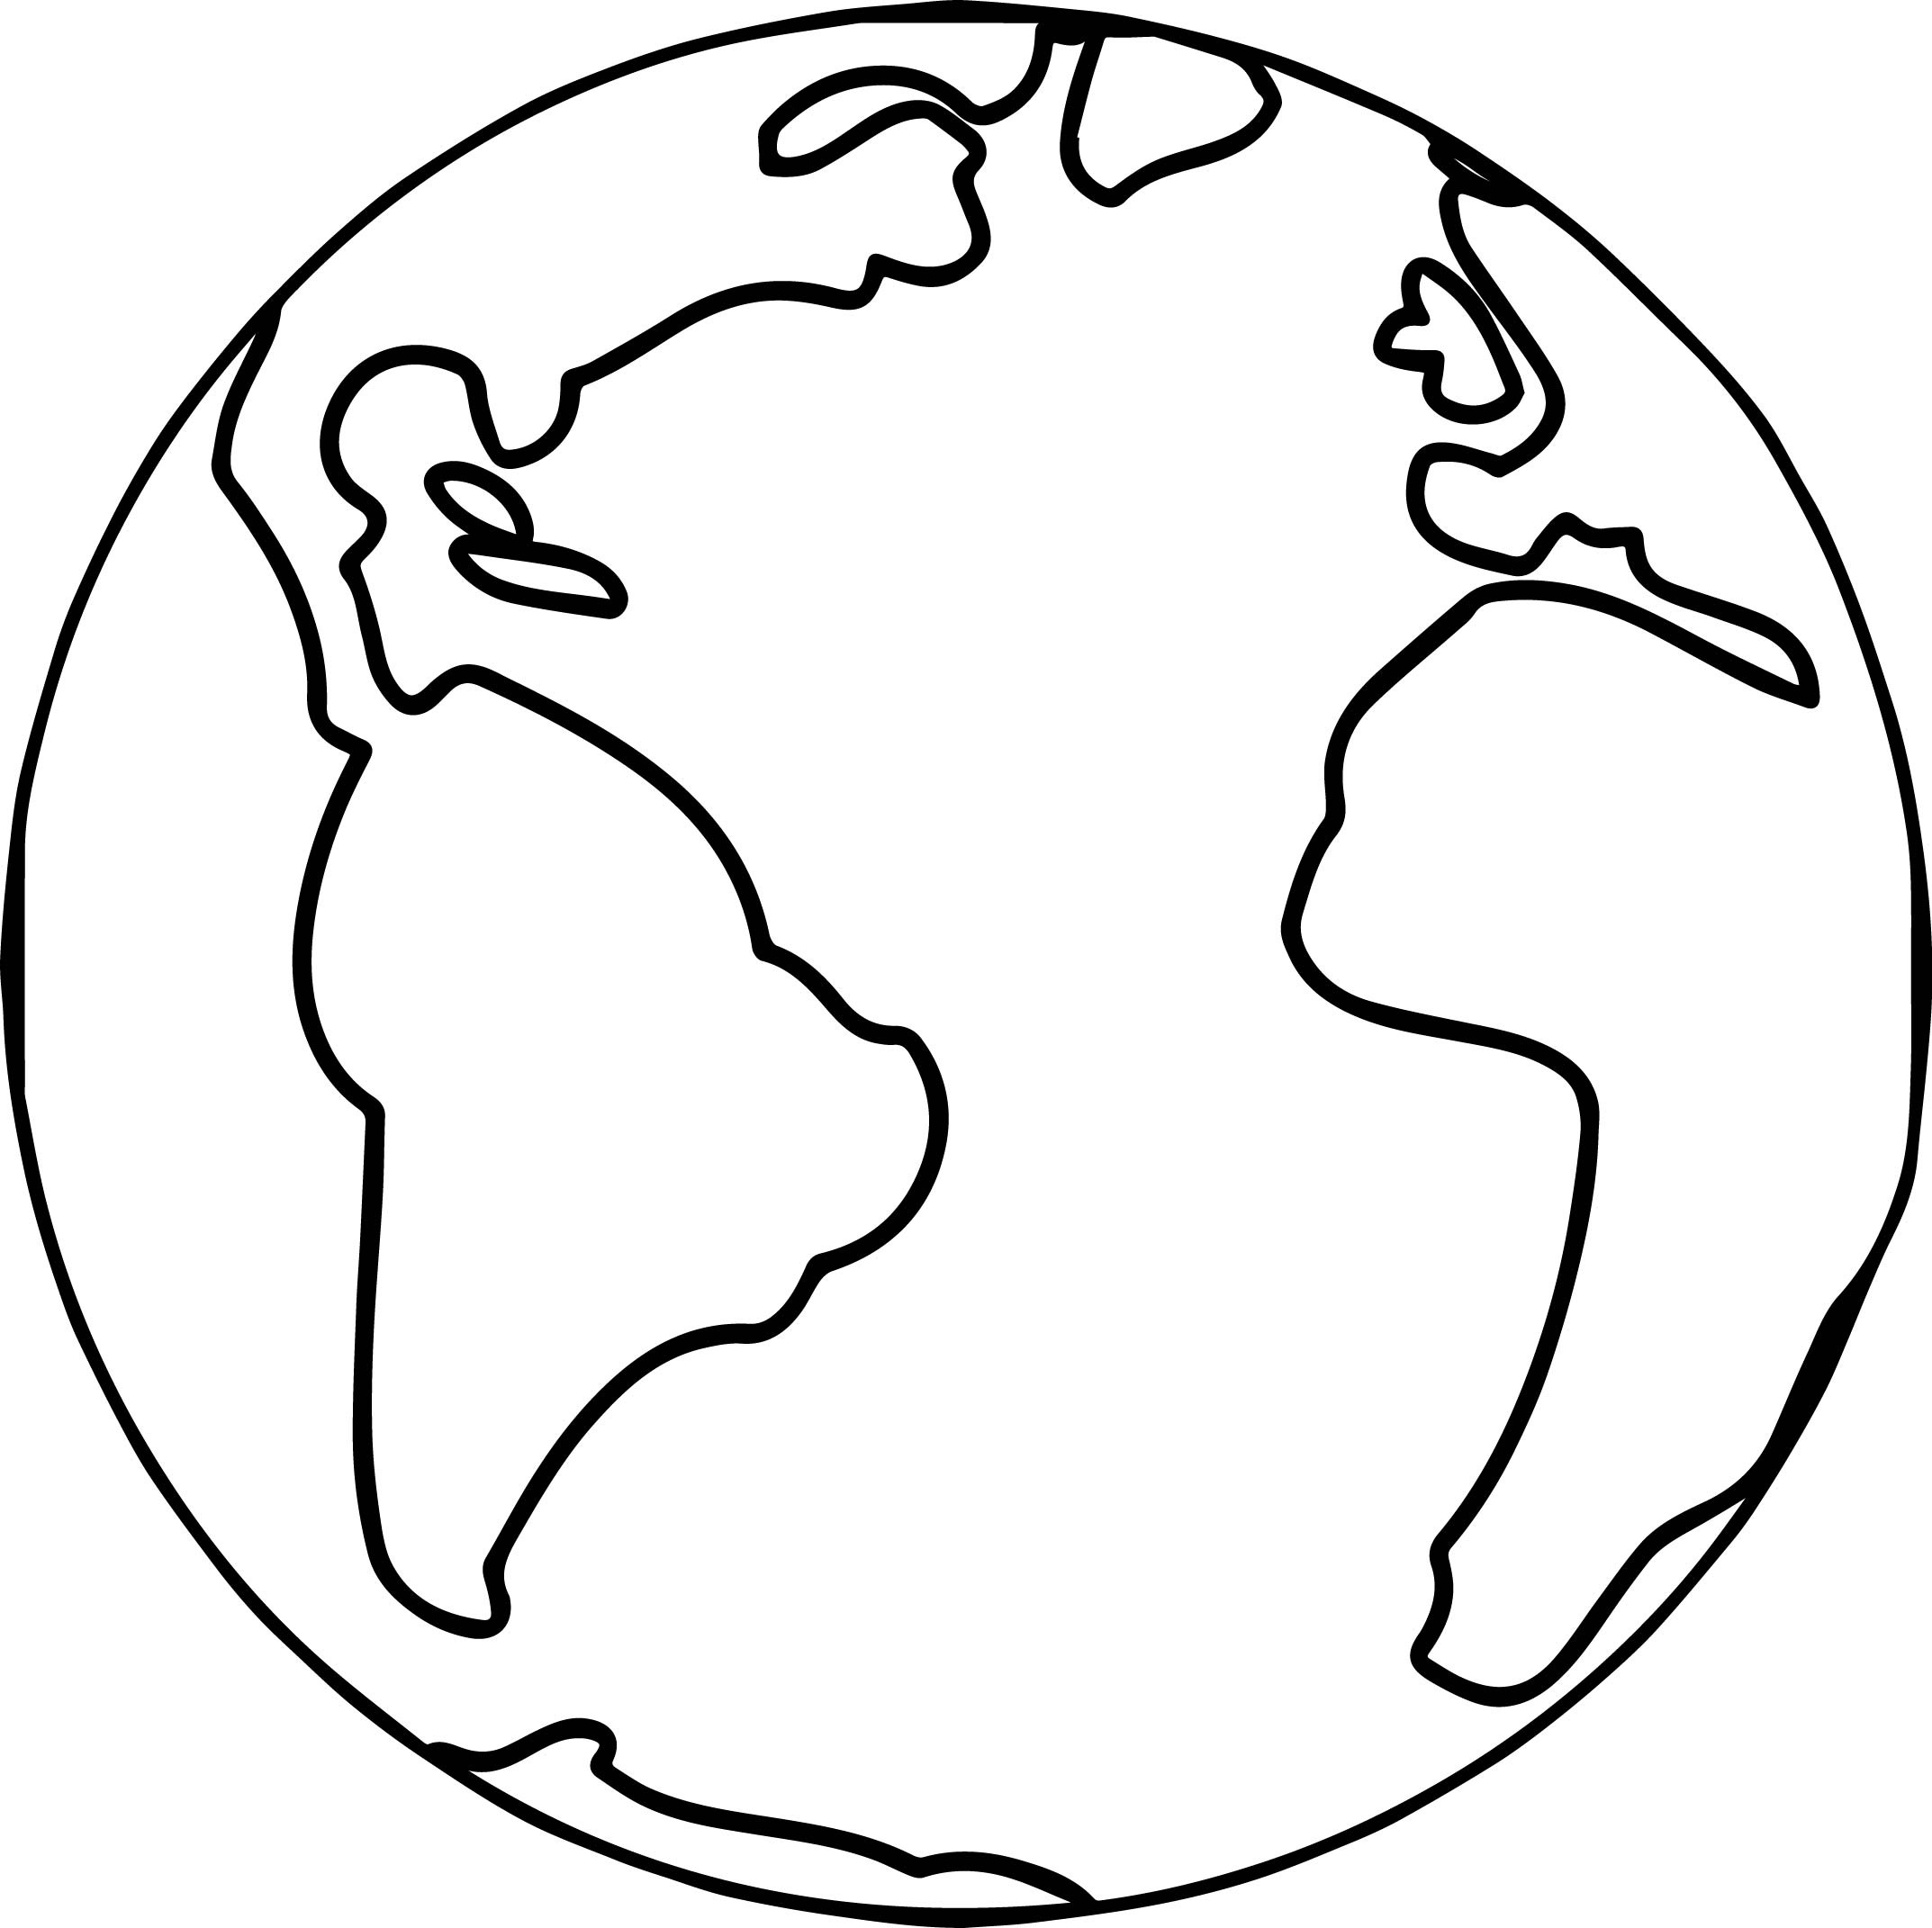 Printable Earth Coloring Pages   Free Download Best Printable Earth - Earth Coloring Pages Free Printable